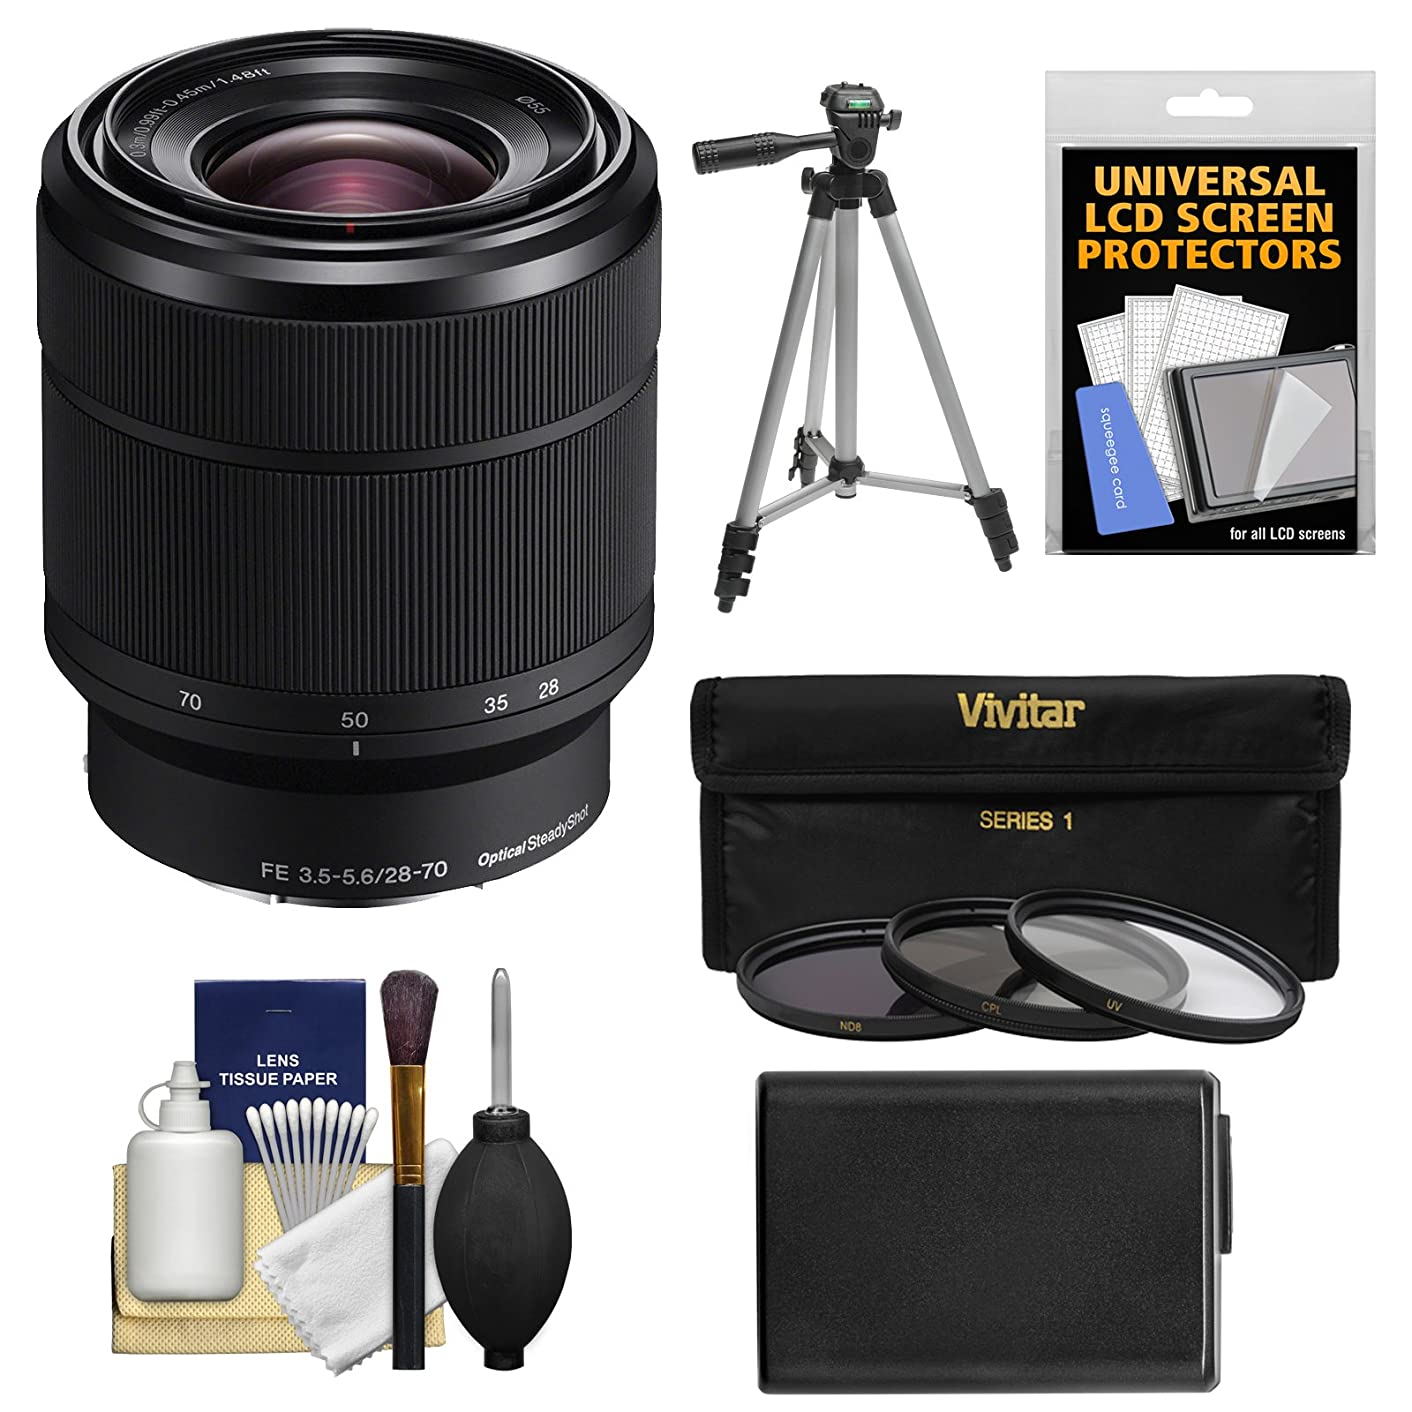 Sony Alpha E-Mount FE 28-70mm f/3.5-5.6 OSS Zoom Lens with NP-FW50 Battery + Tripod + 3 UV/ND8/CPL Filters Kit for A7, A7R, A7S Mark II Cameras